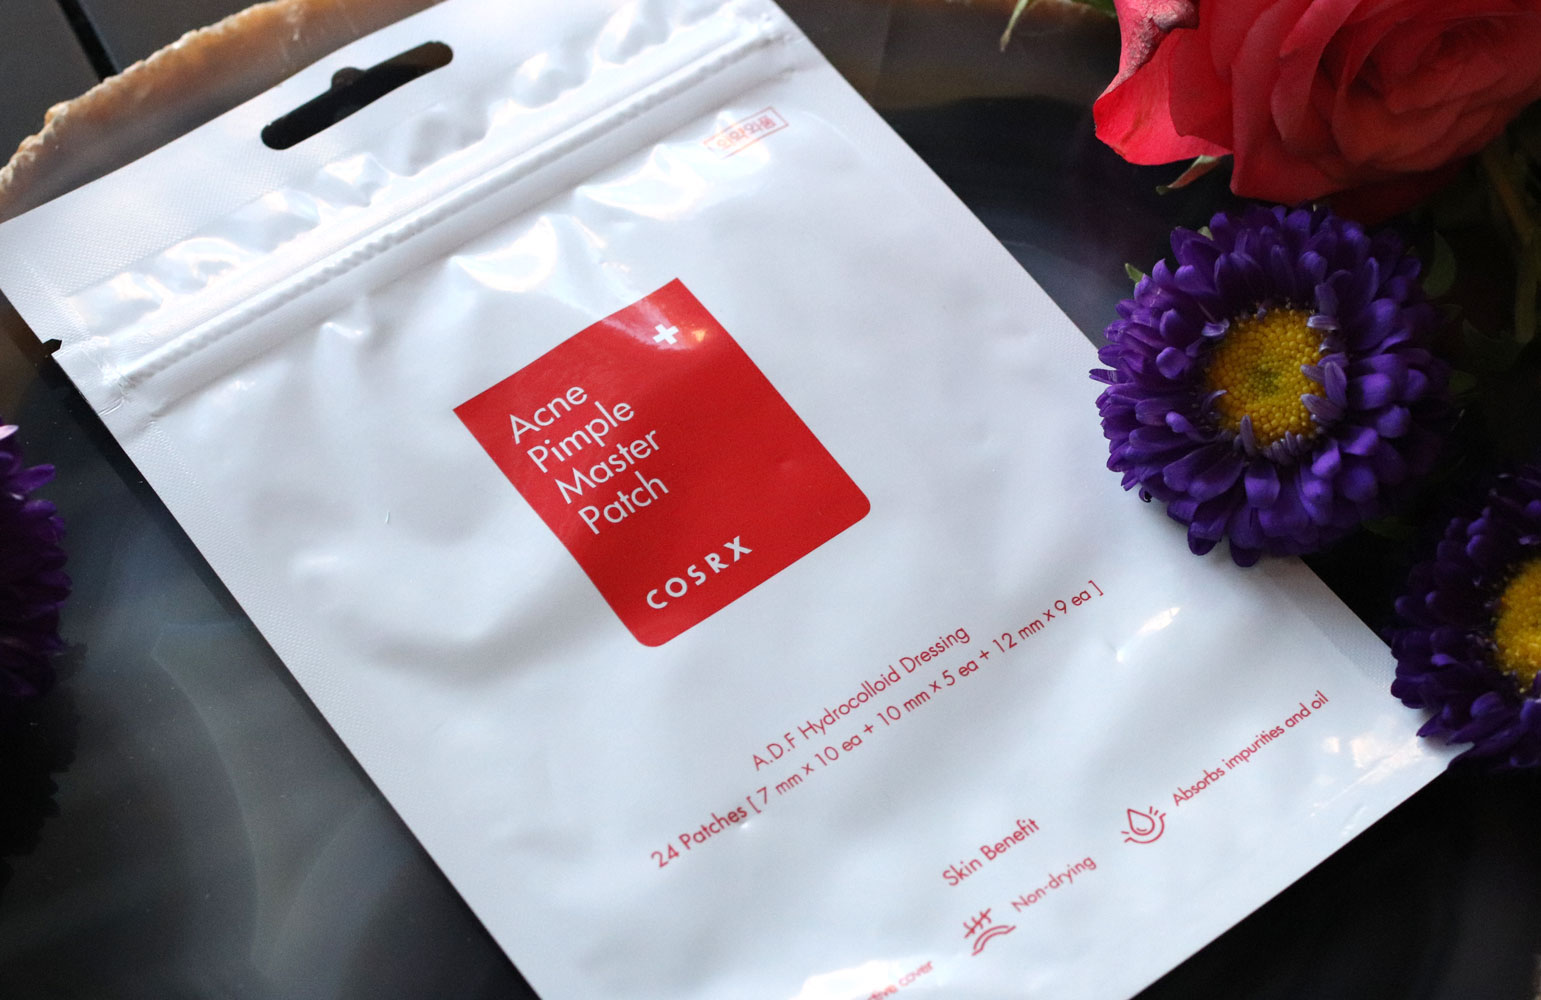 Cosrx Acne Pimple Master Patch Hydrocolloid Review